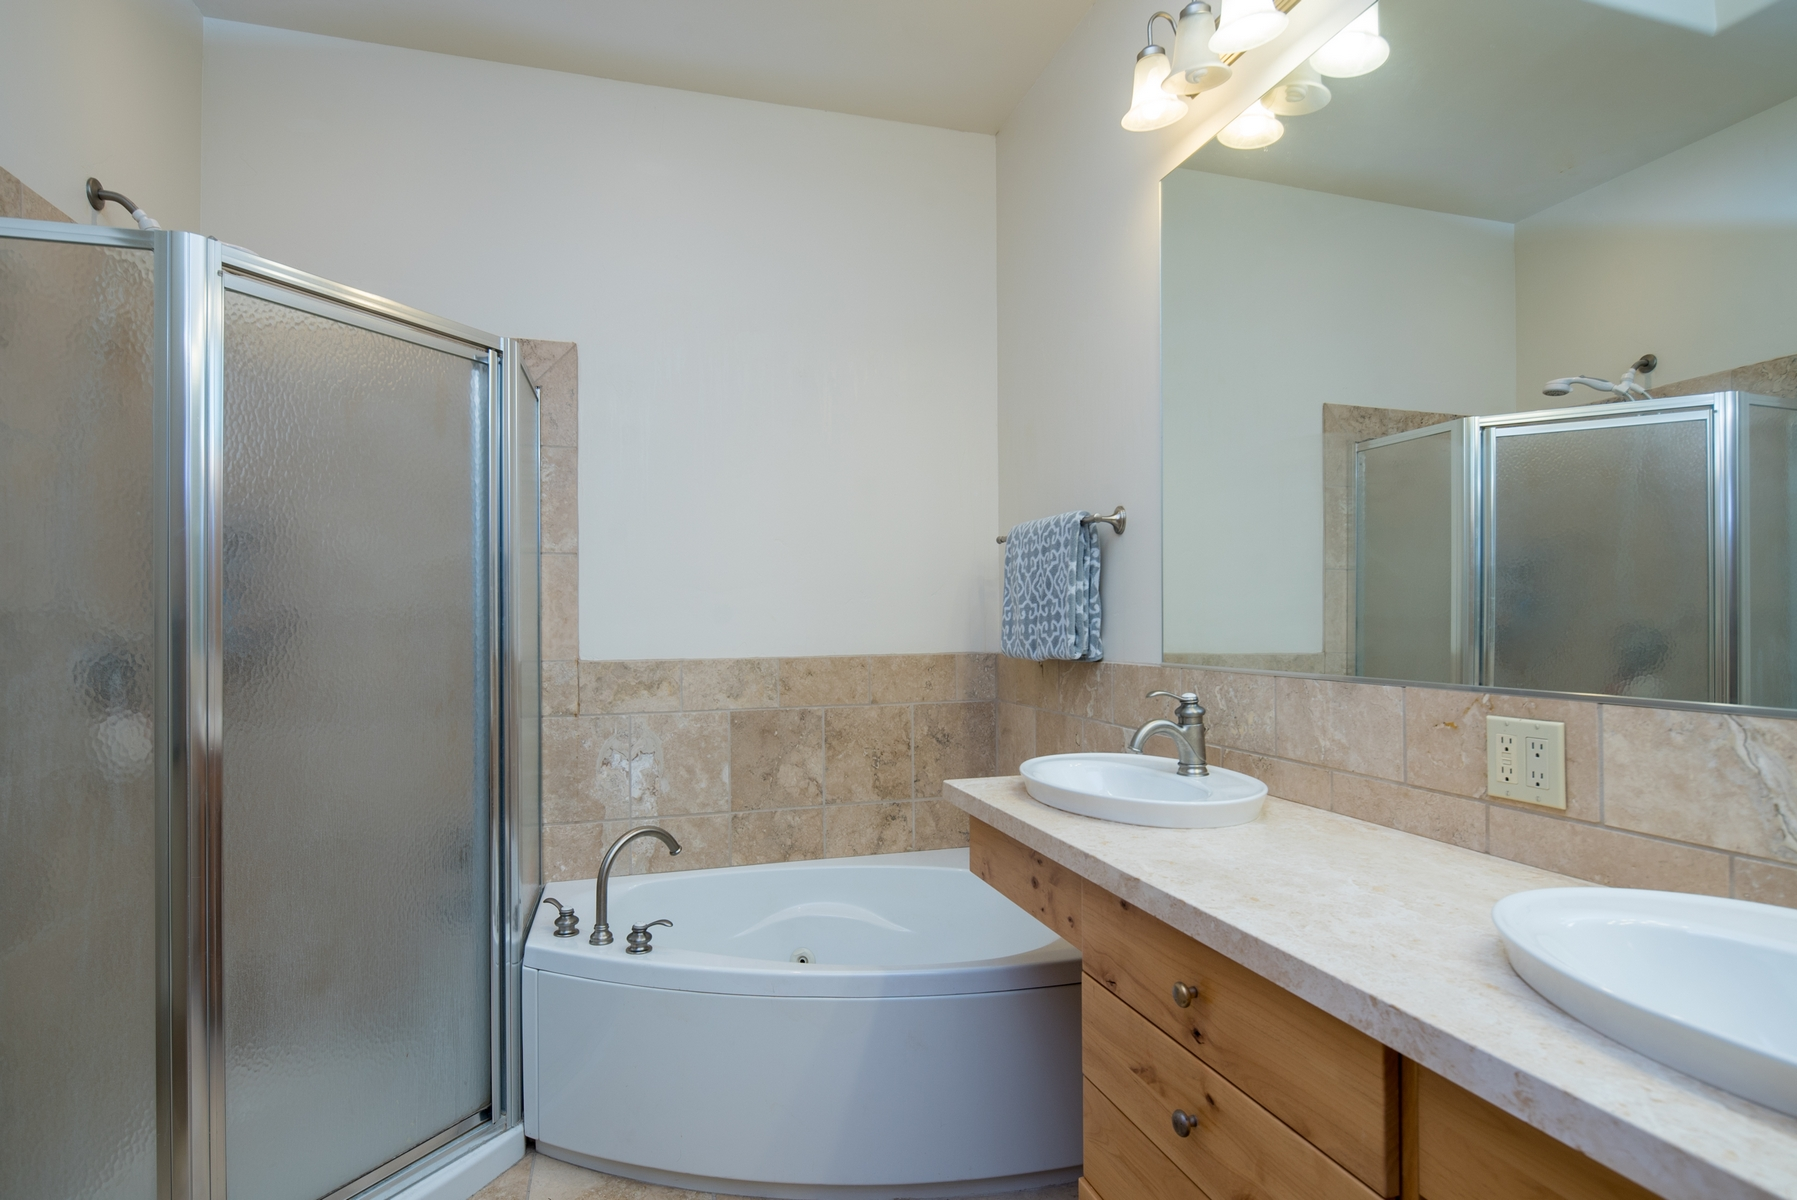 Additional photo for property listing at Welcoming Warm Springs Townhouse 101 Four Seasons Way #1 凯彻姆, 爱达荷州 83340 美国